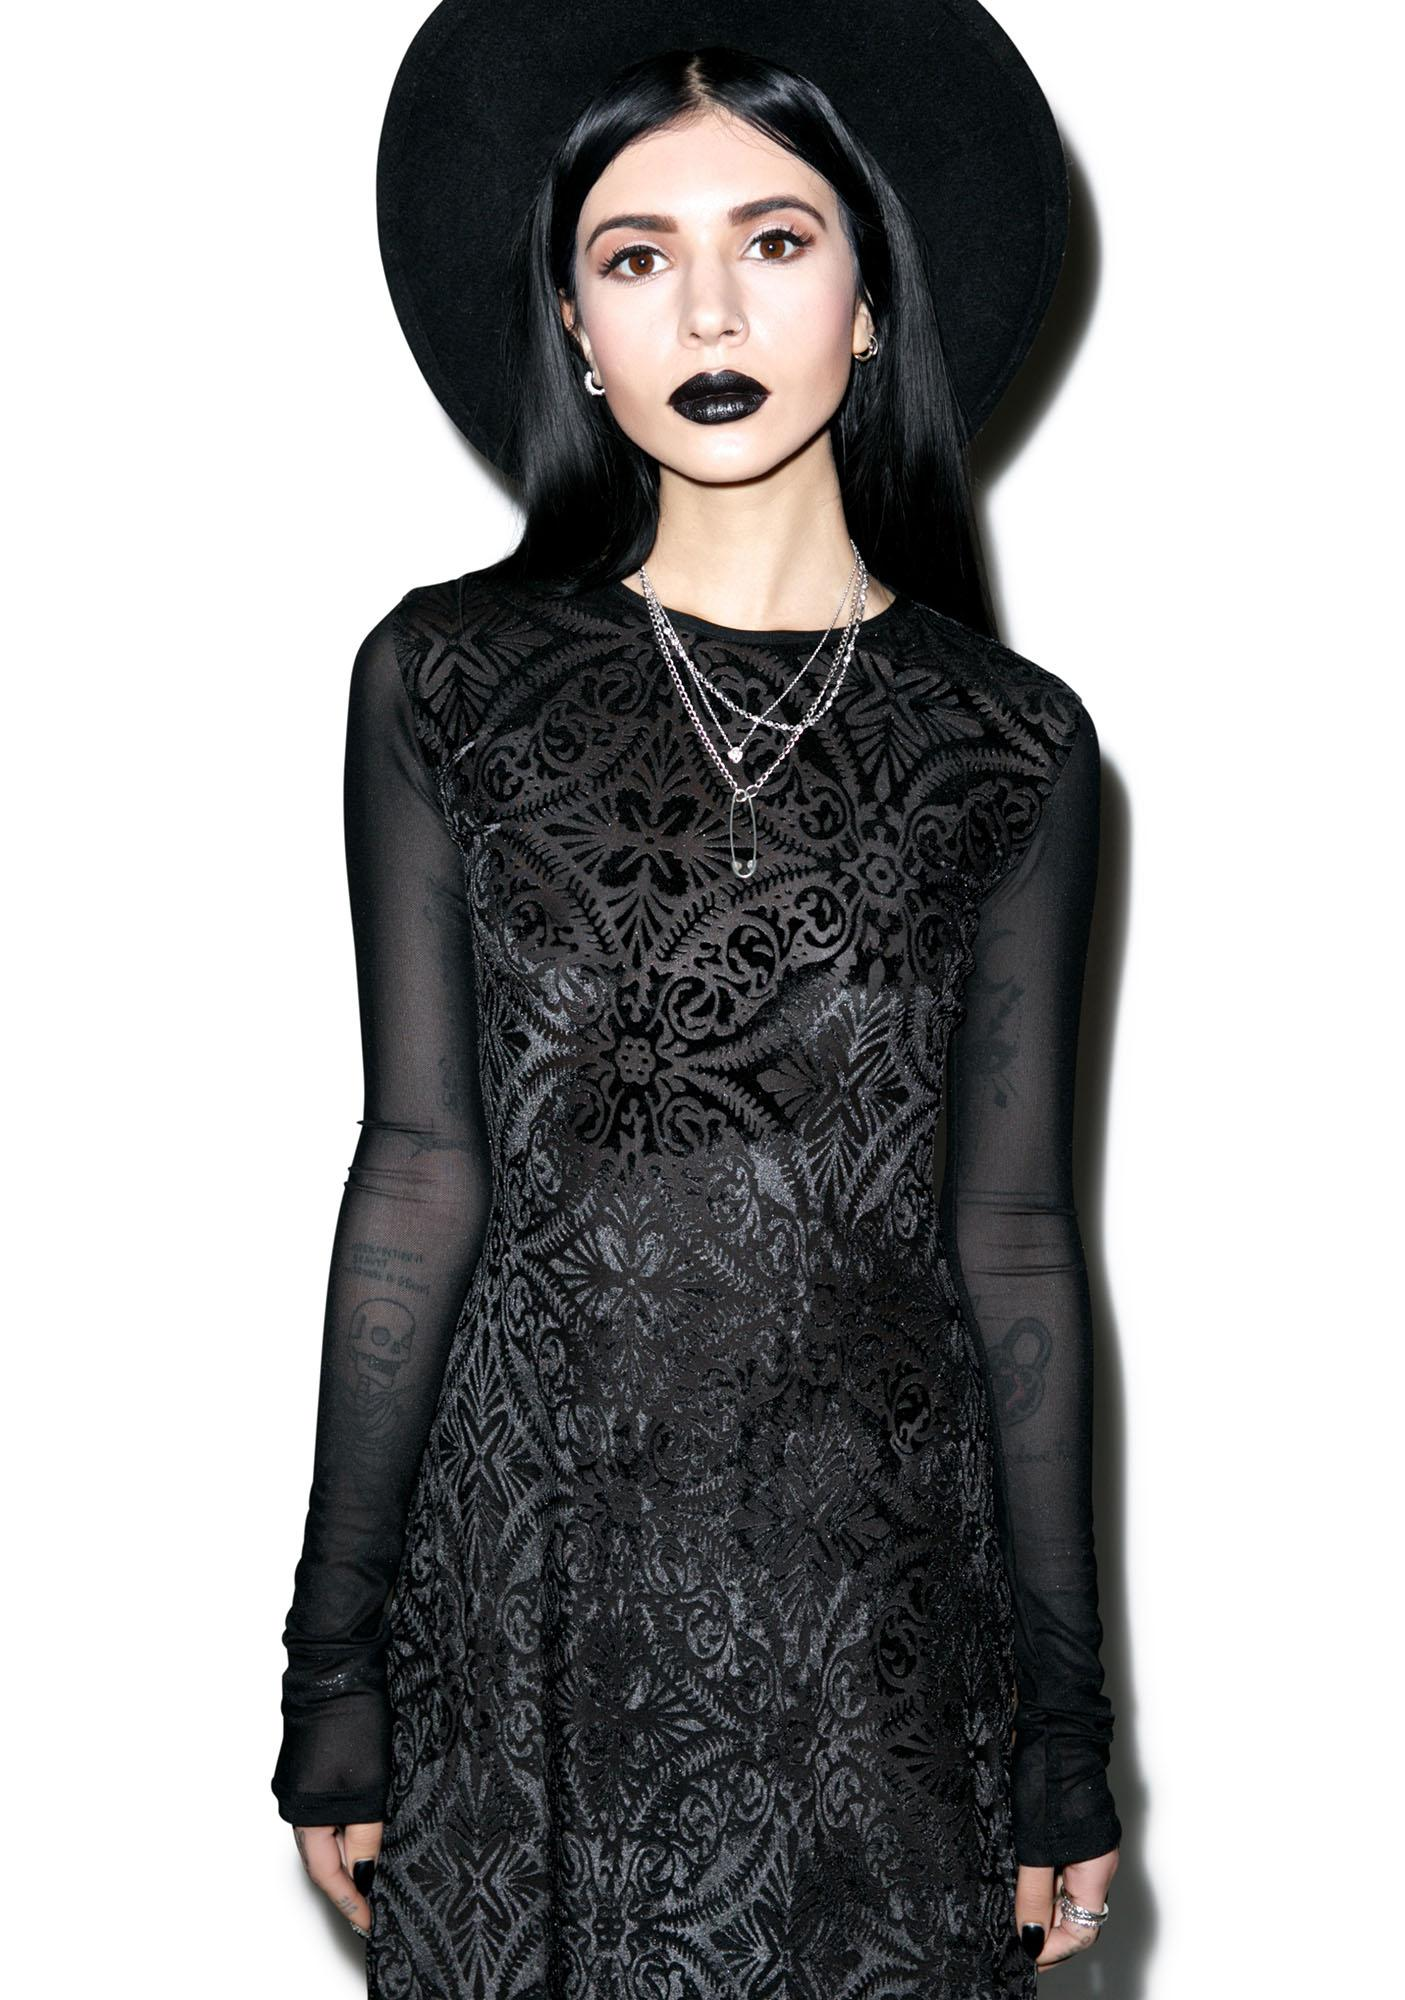 Black Wednesday The Cursed Dress